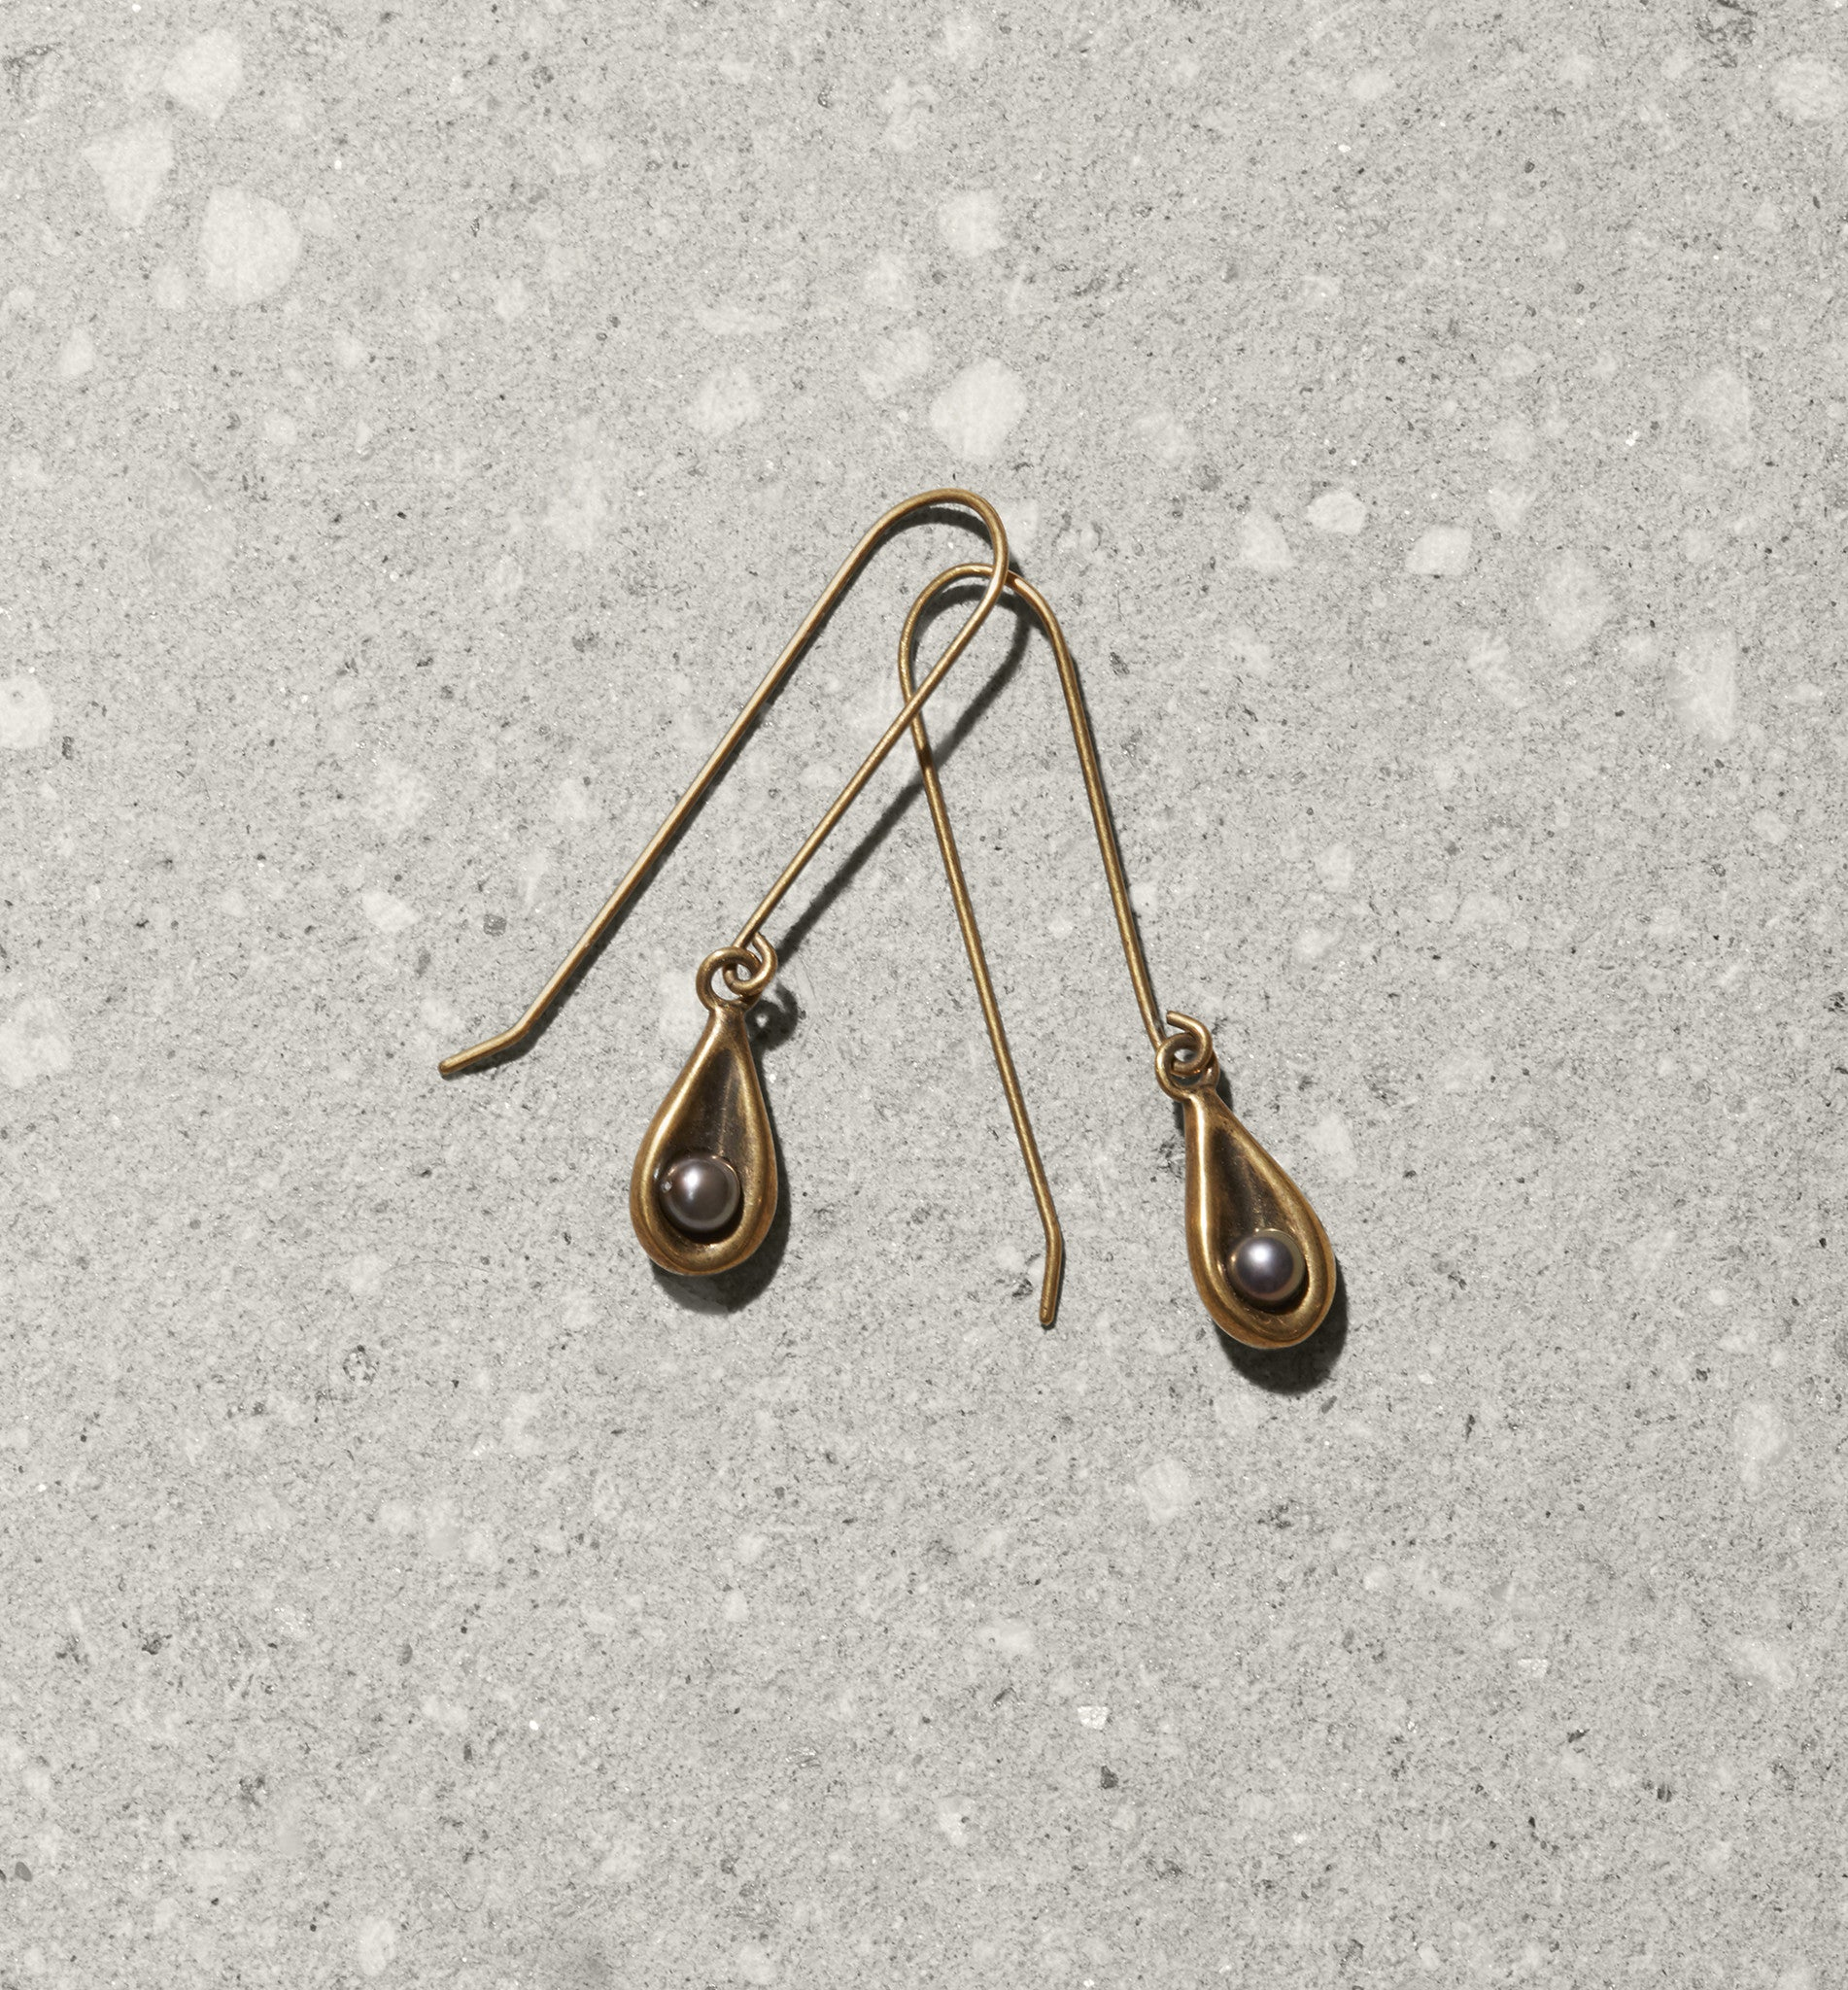 tear drop hook earrings